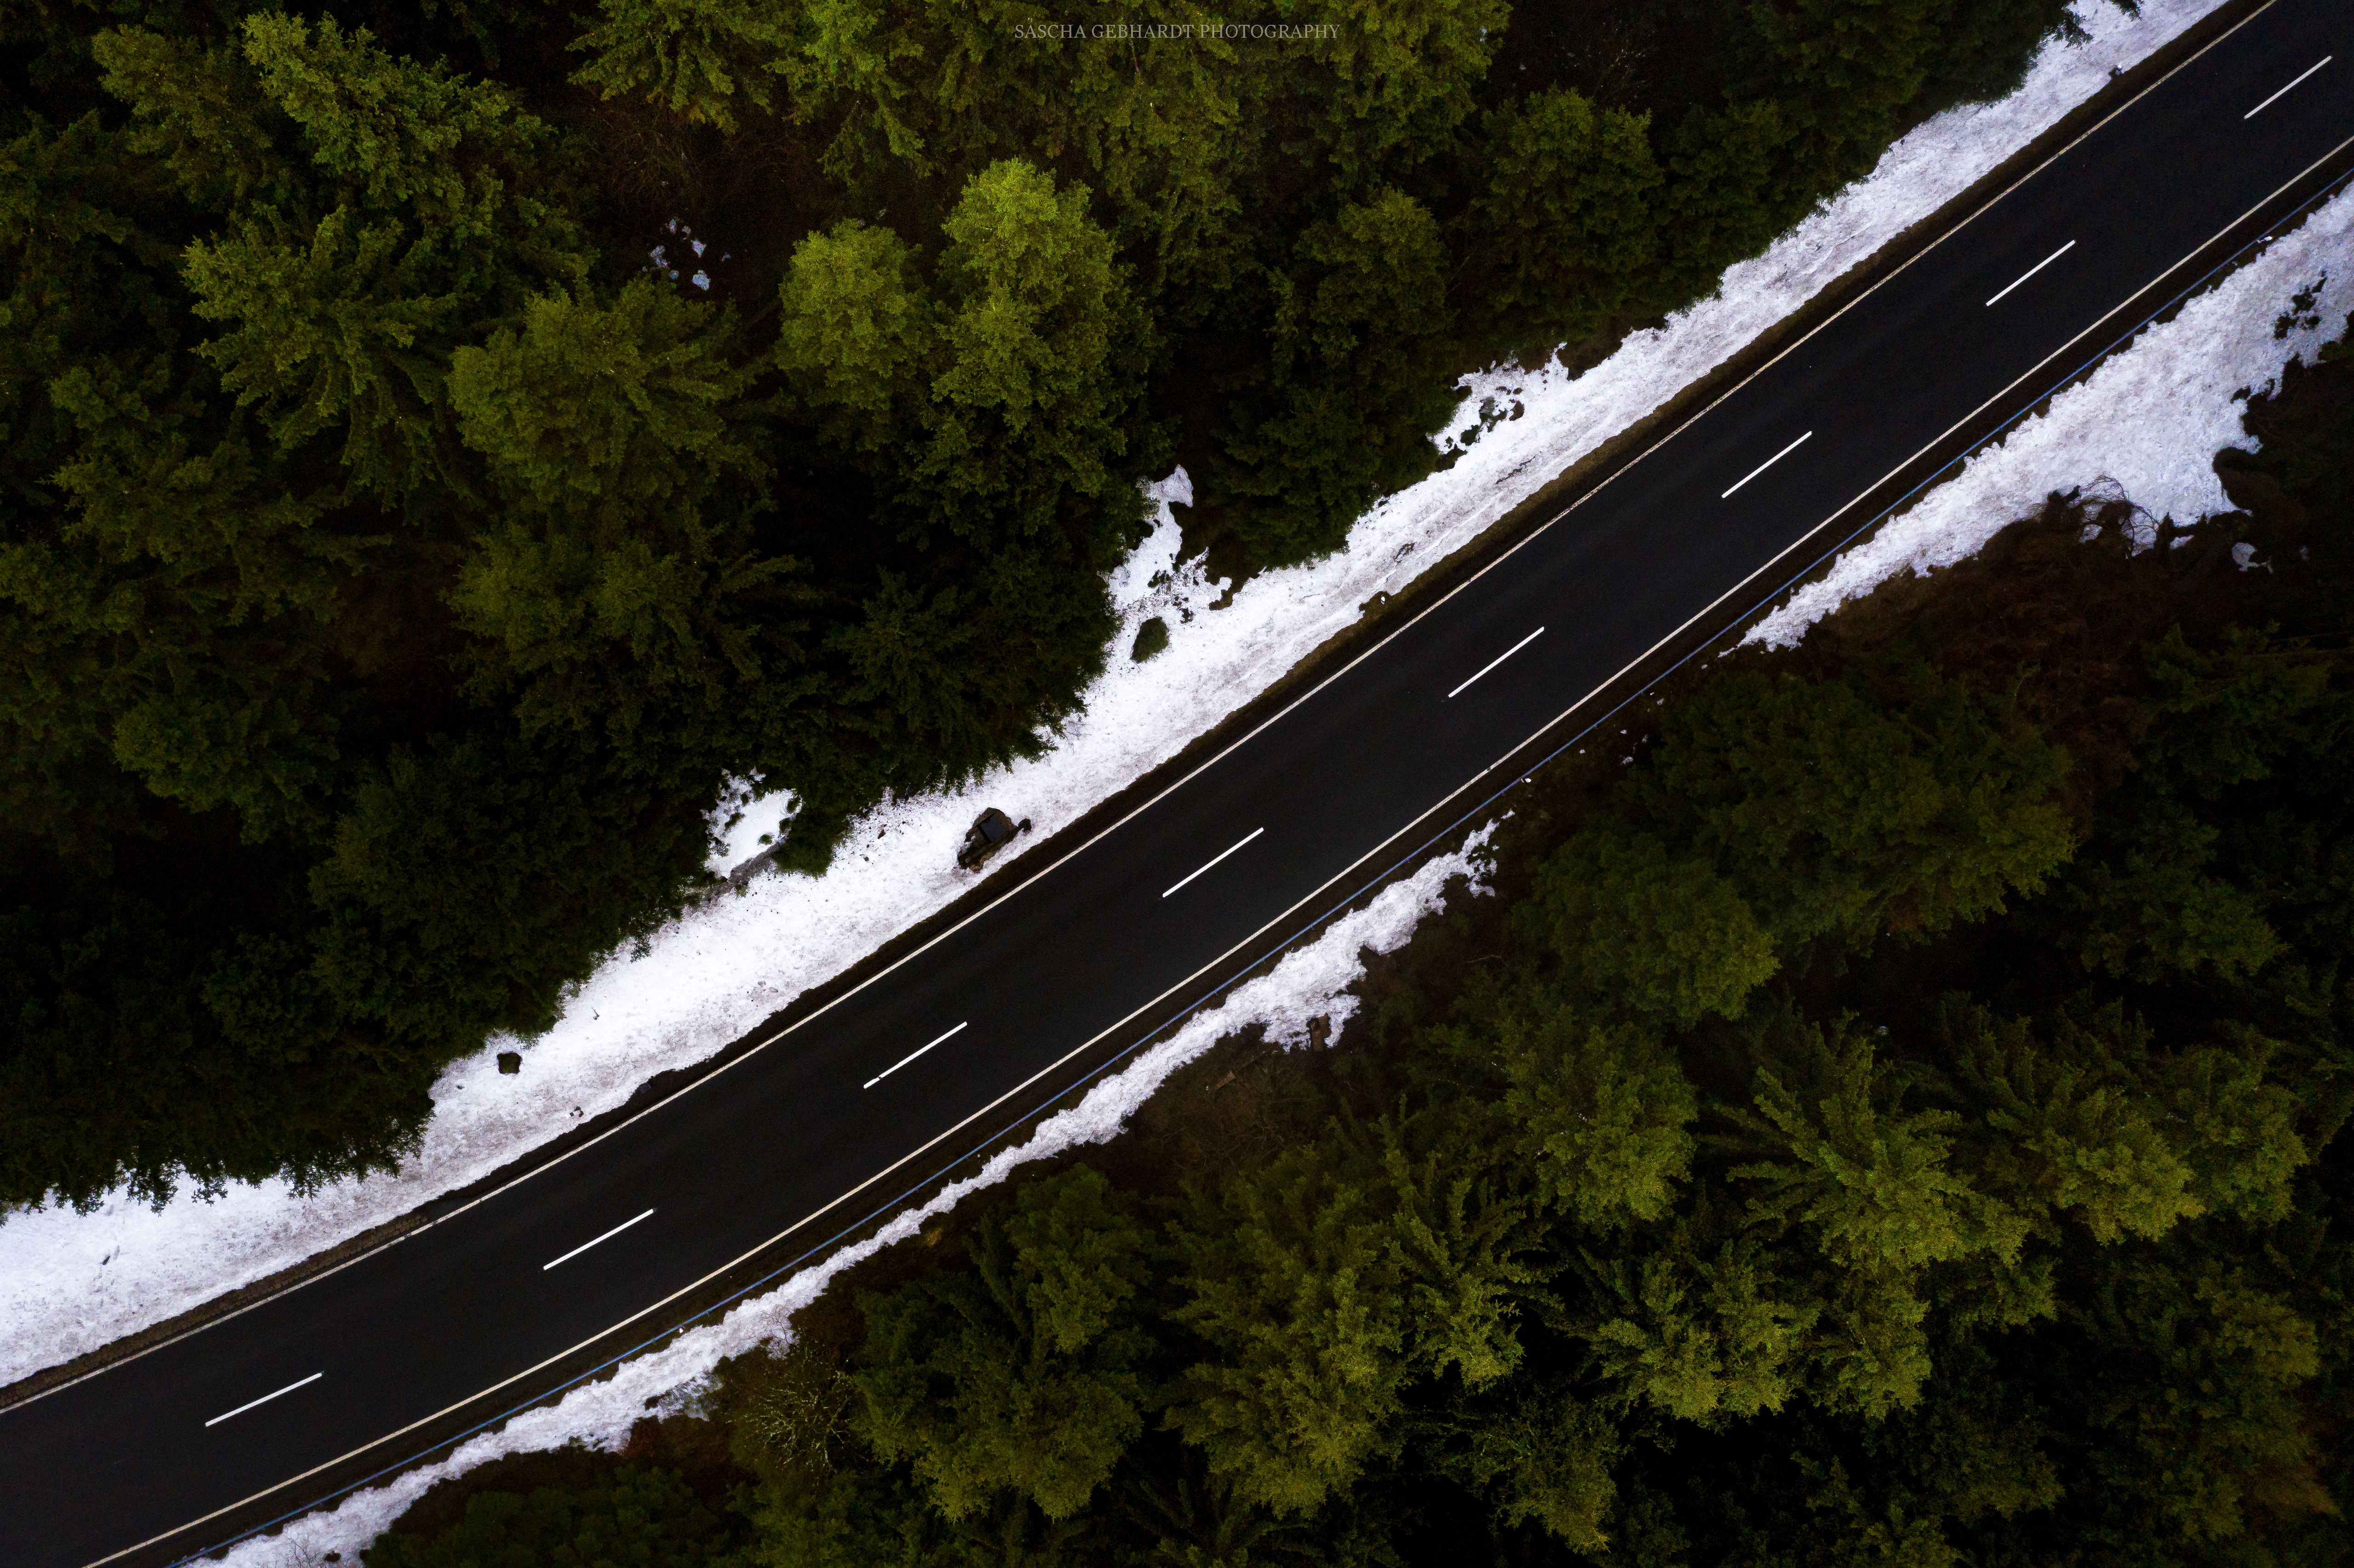 road through woods snow on roads side 1574939562 - Road Through Woods Snow On Roads Side -